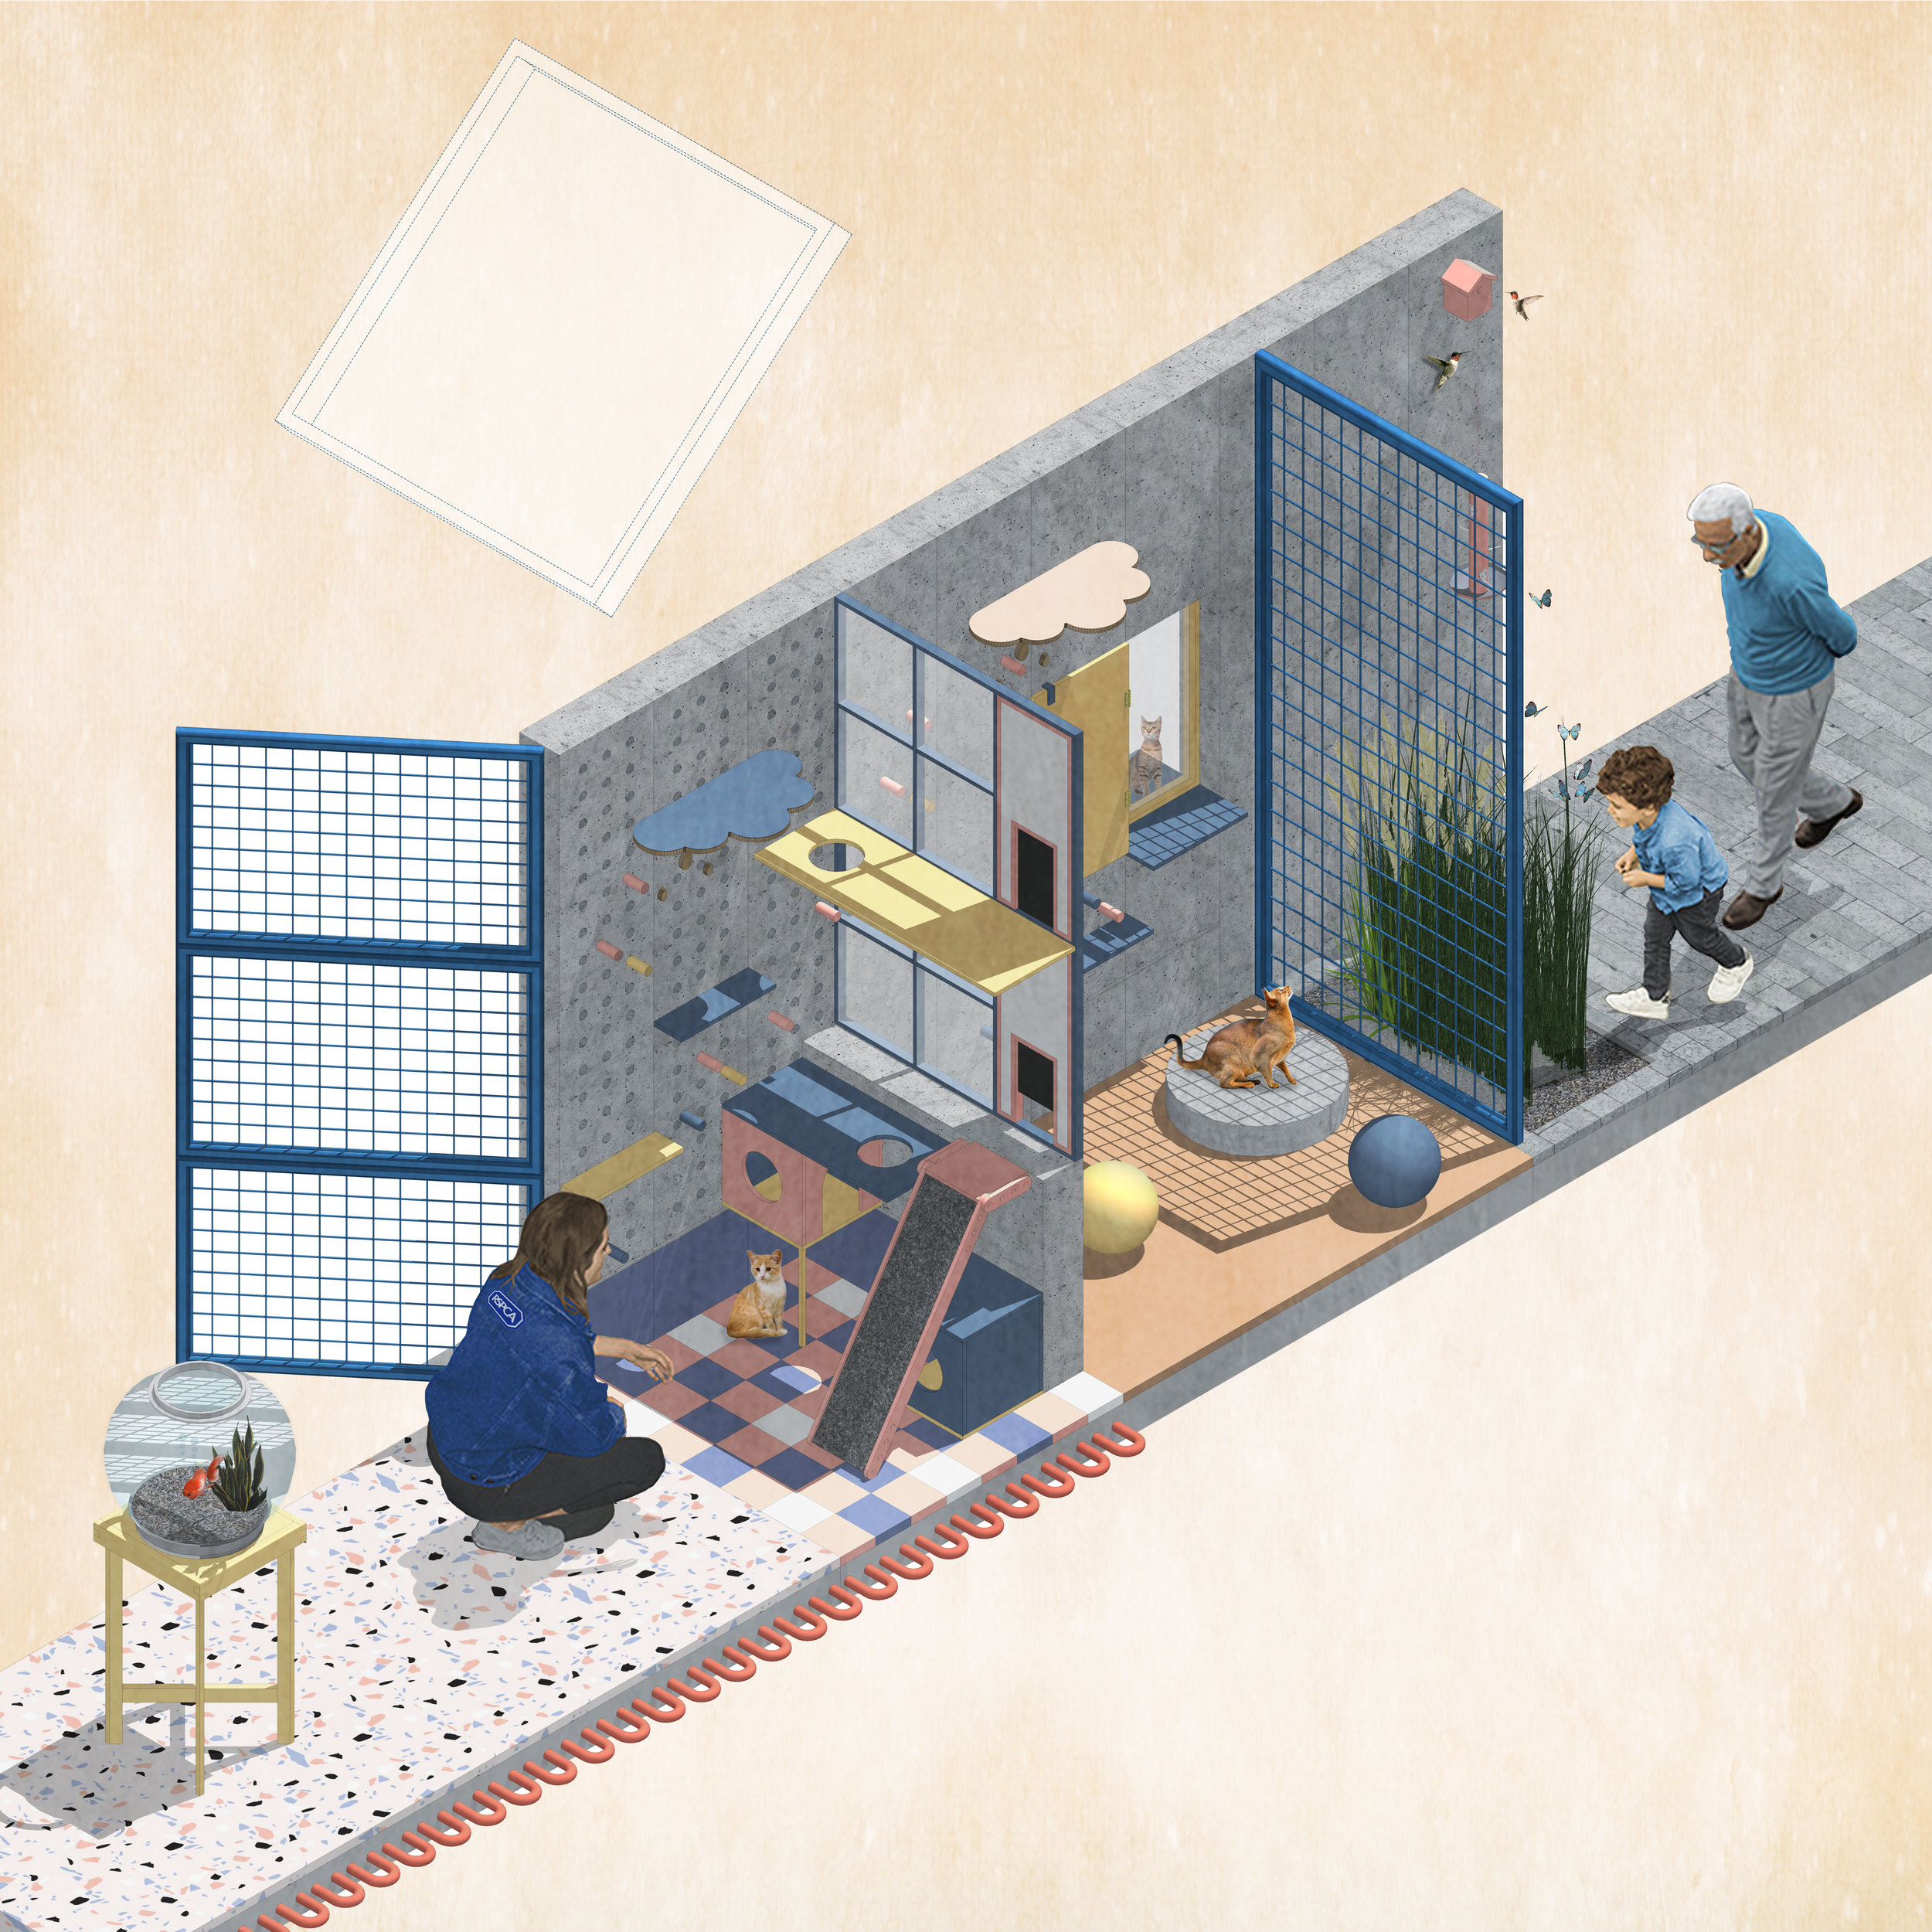 010 Cattery zoomed render.jpeg